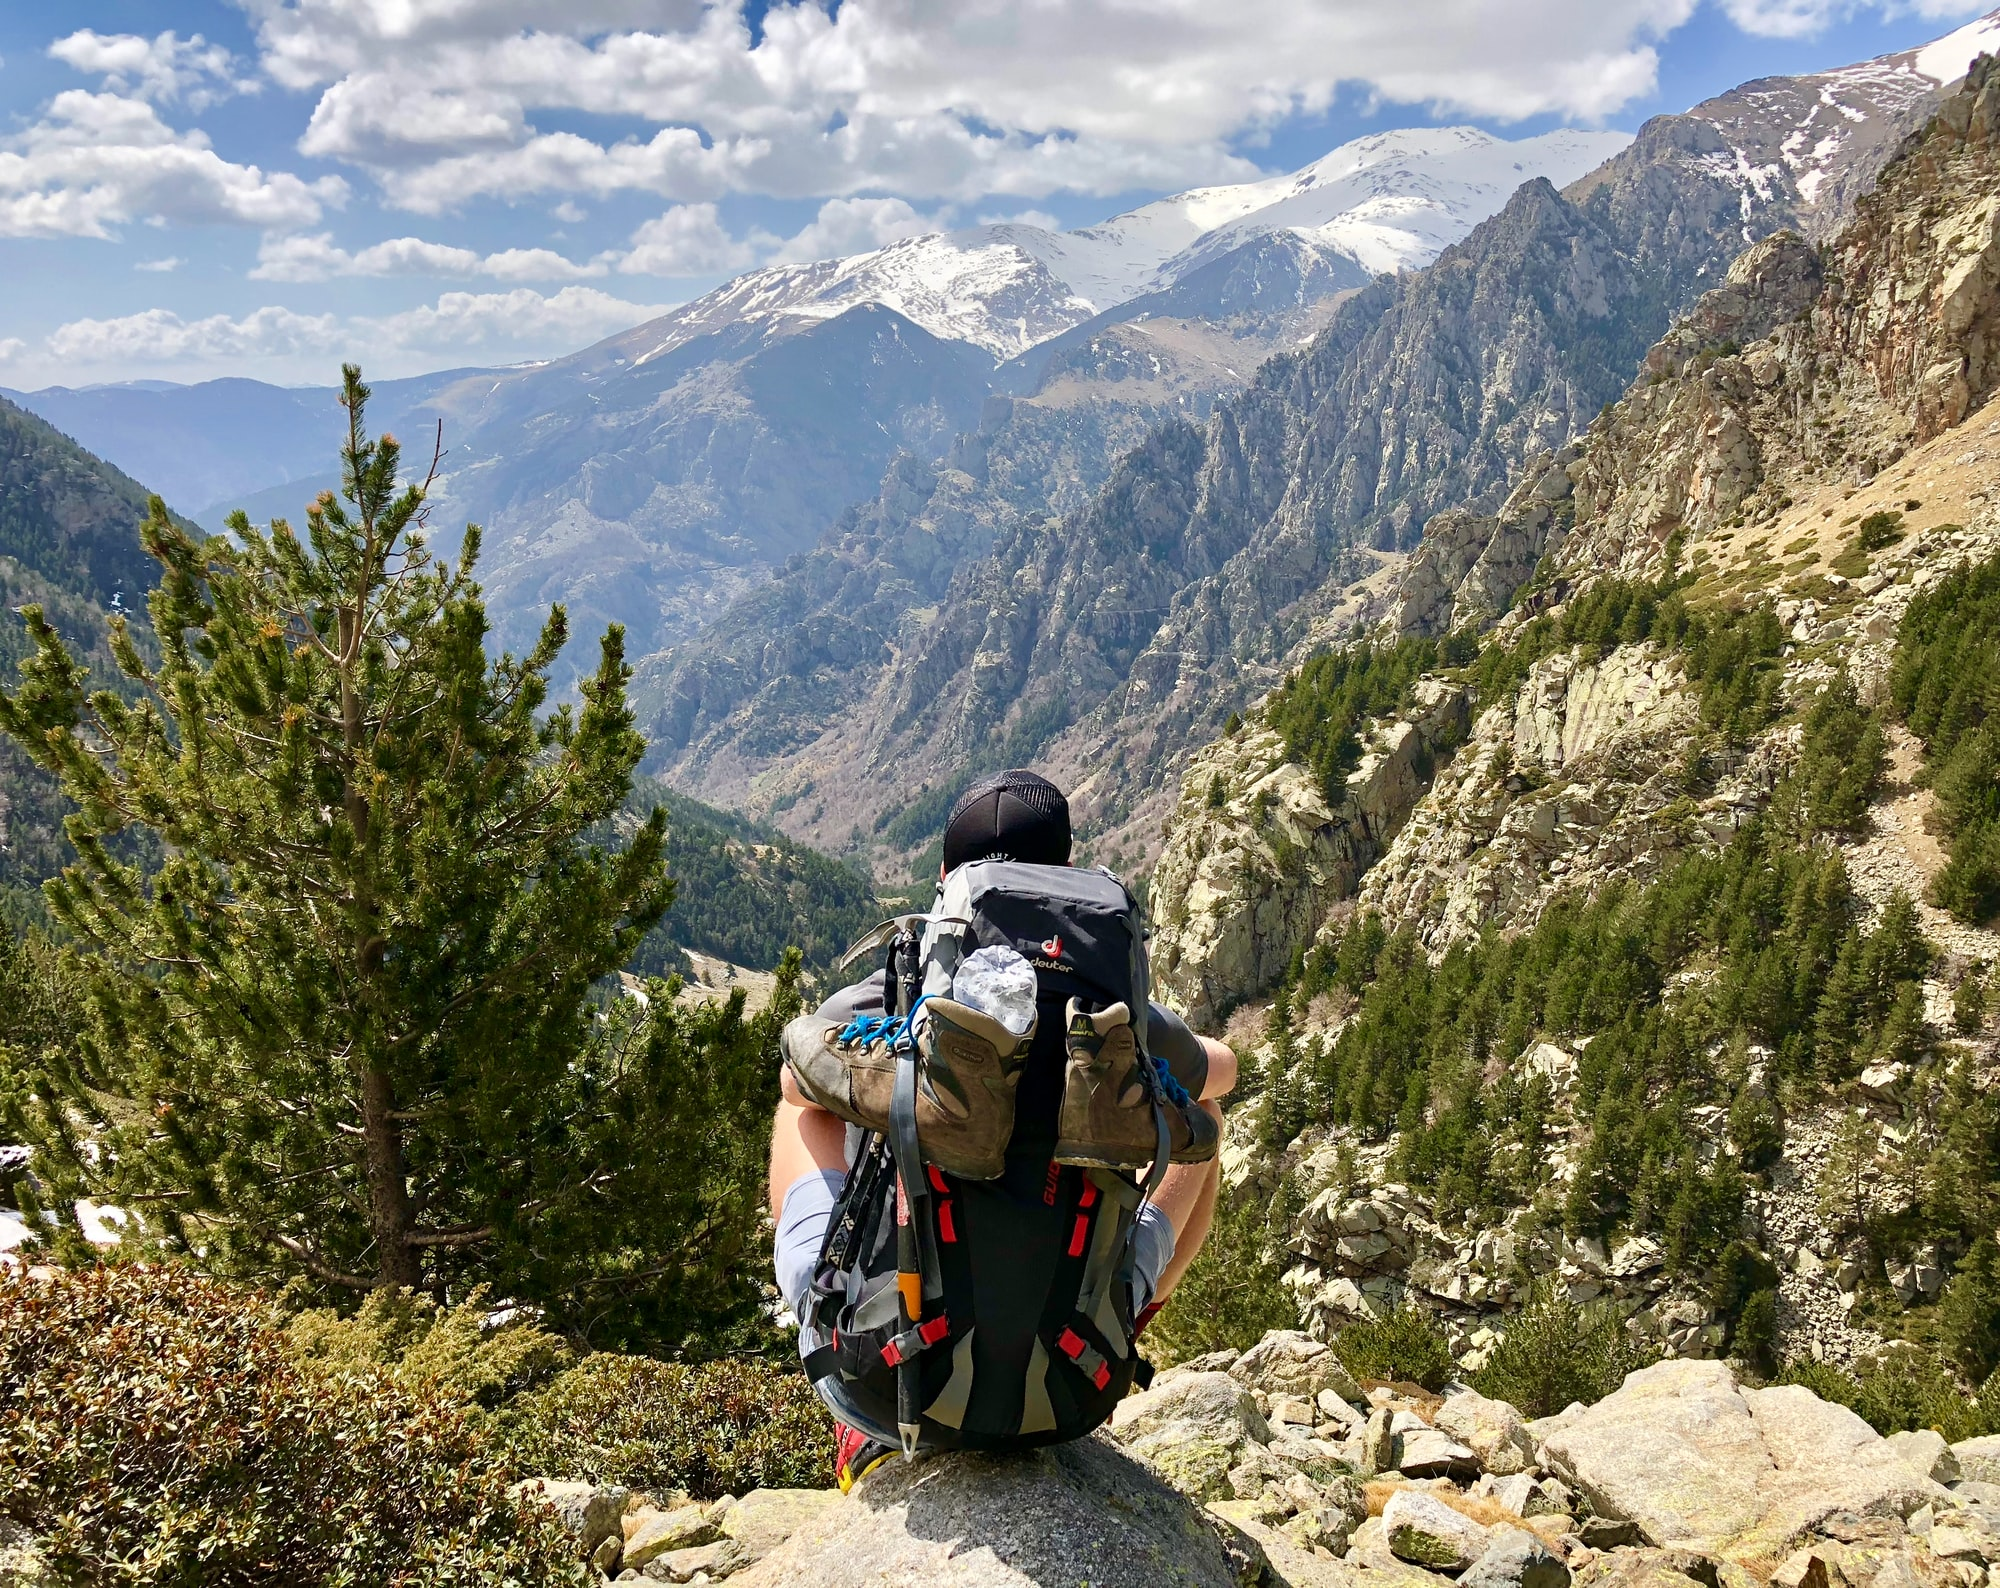 Thru Hiking 101: Taking The Big Leap Into a Lifetime Goal